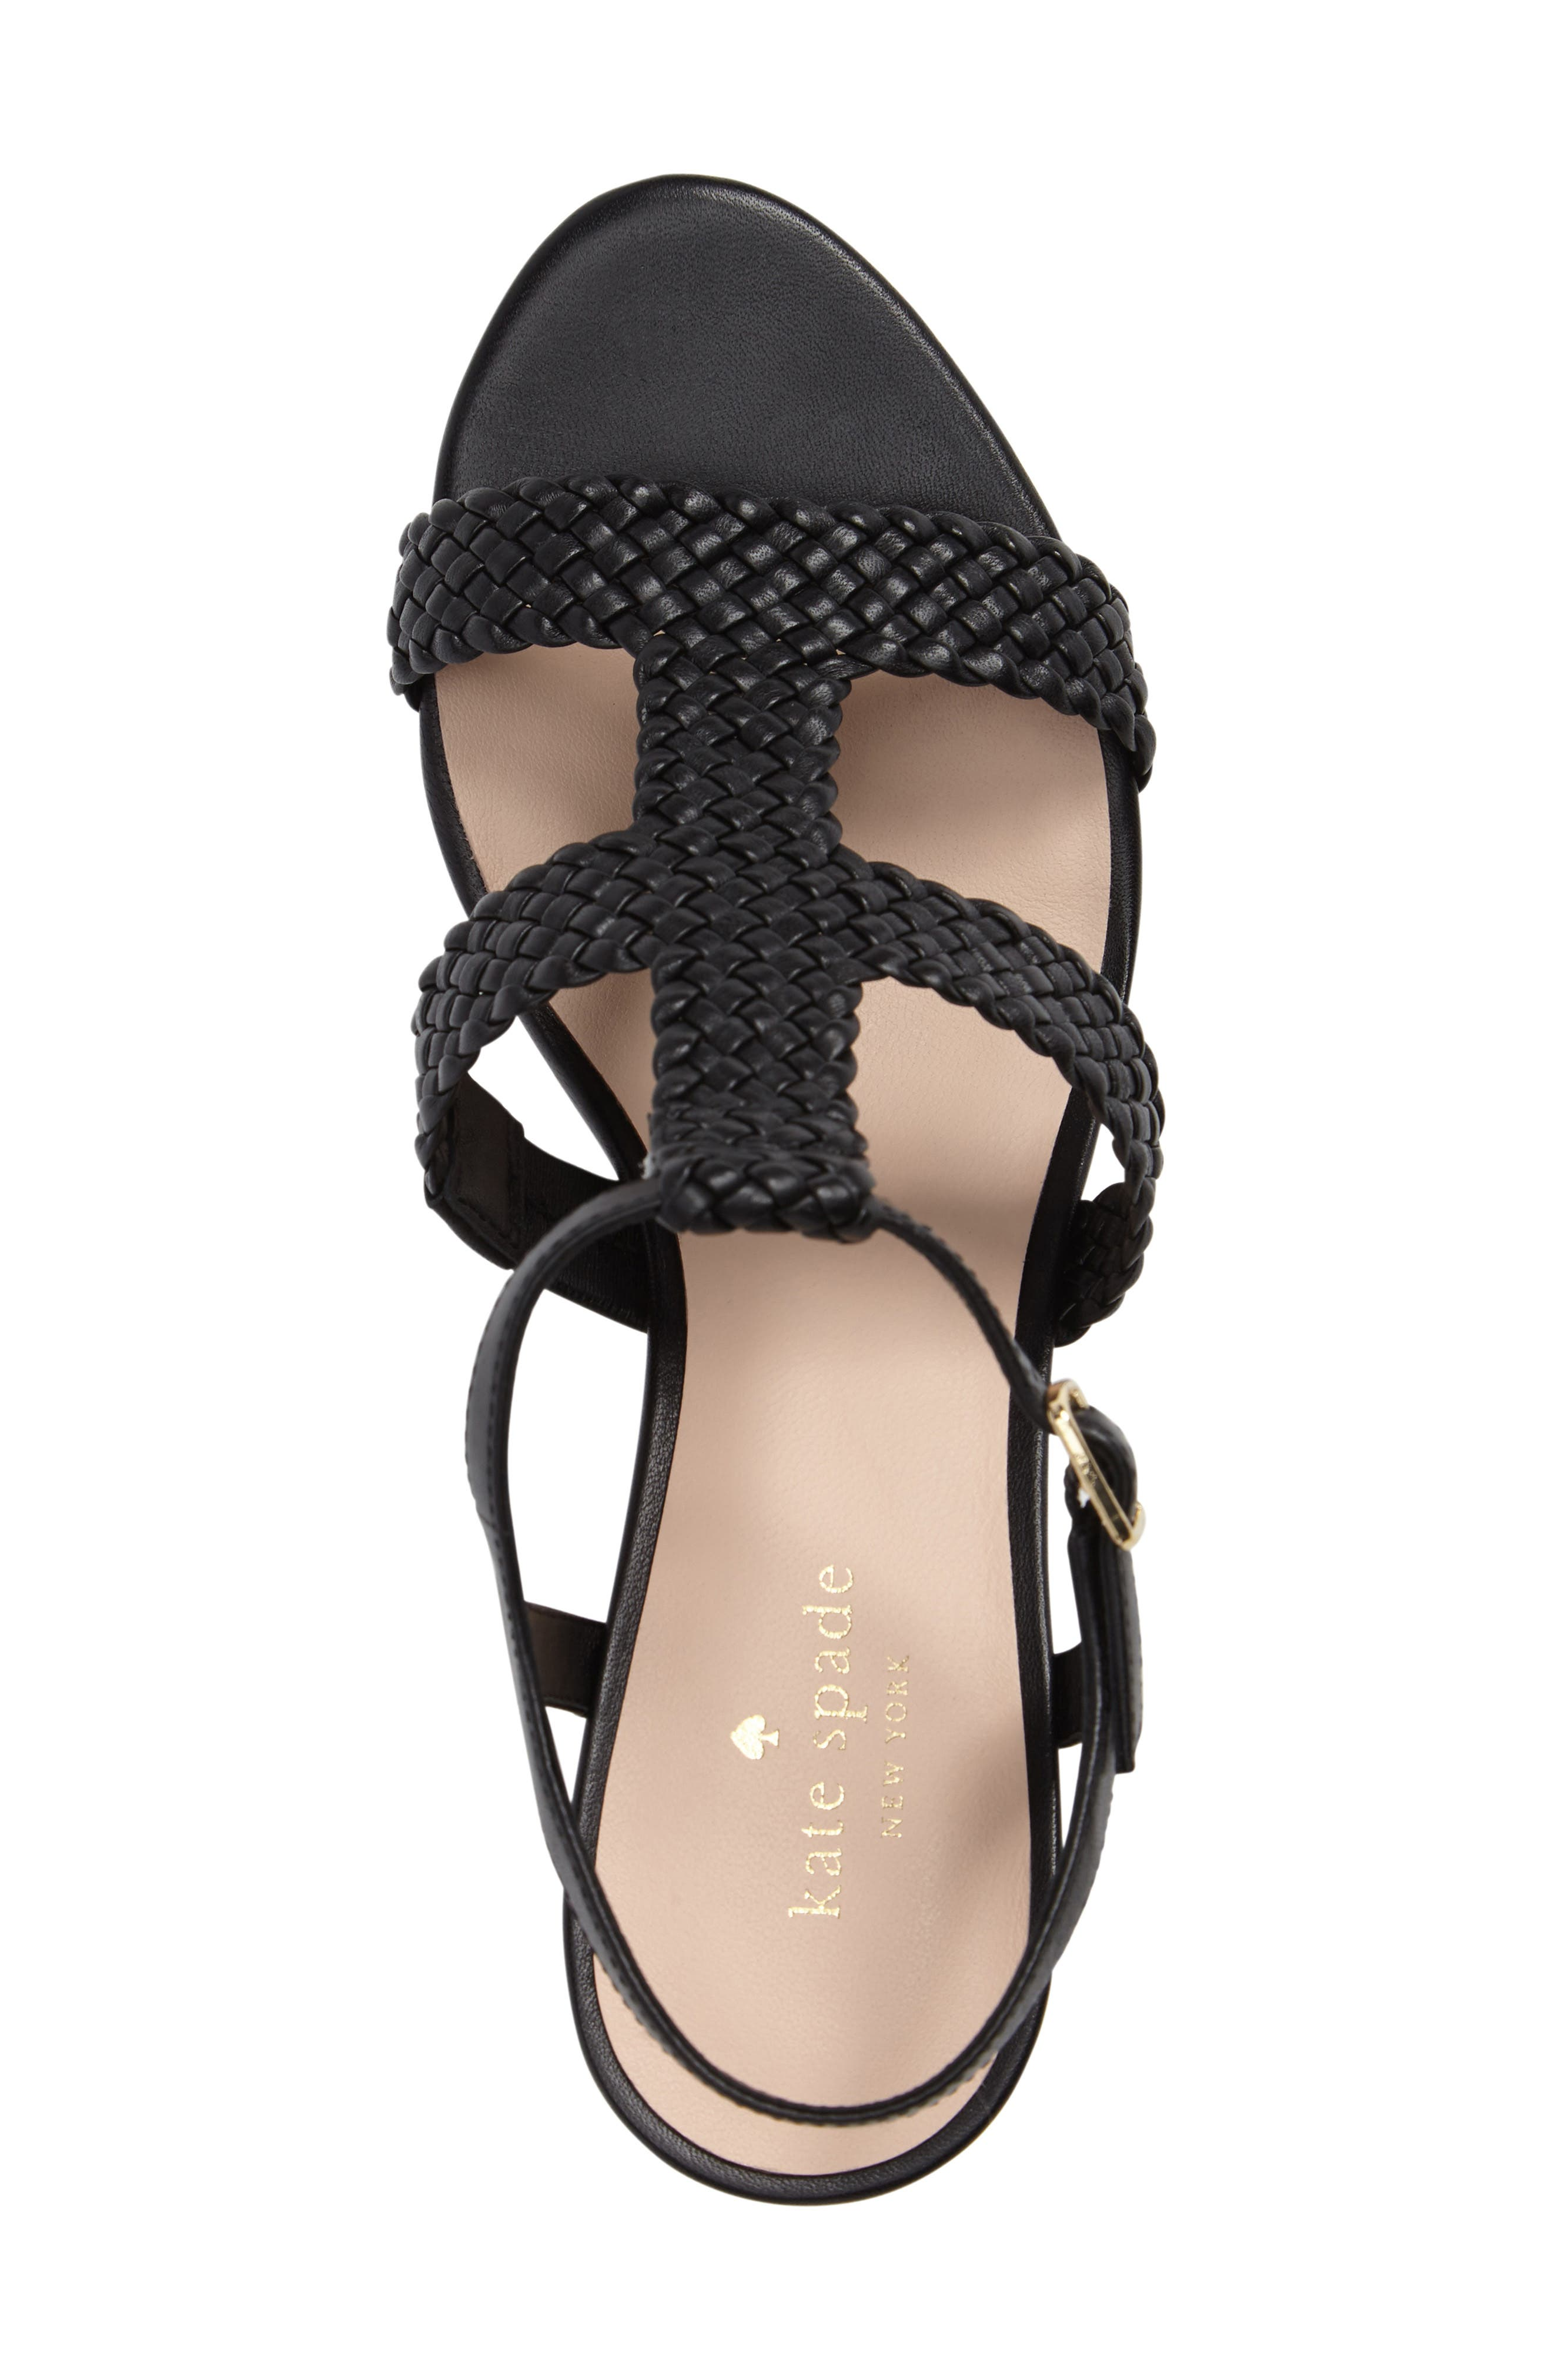 KATE SPADE NEW YORK, tianna platform sandal, Alternate thumbnail 5, color, 001